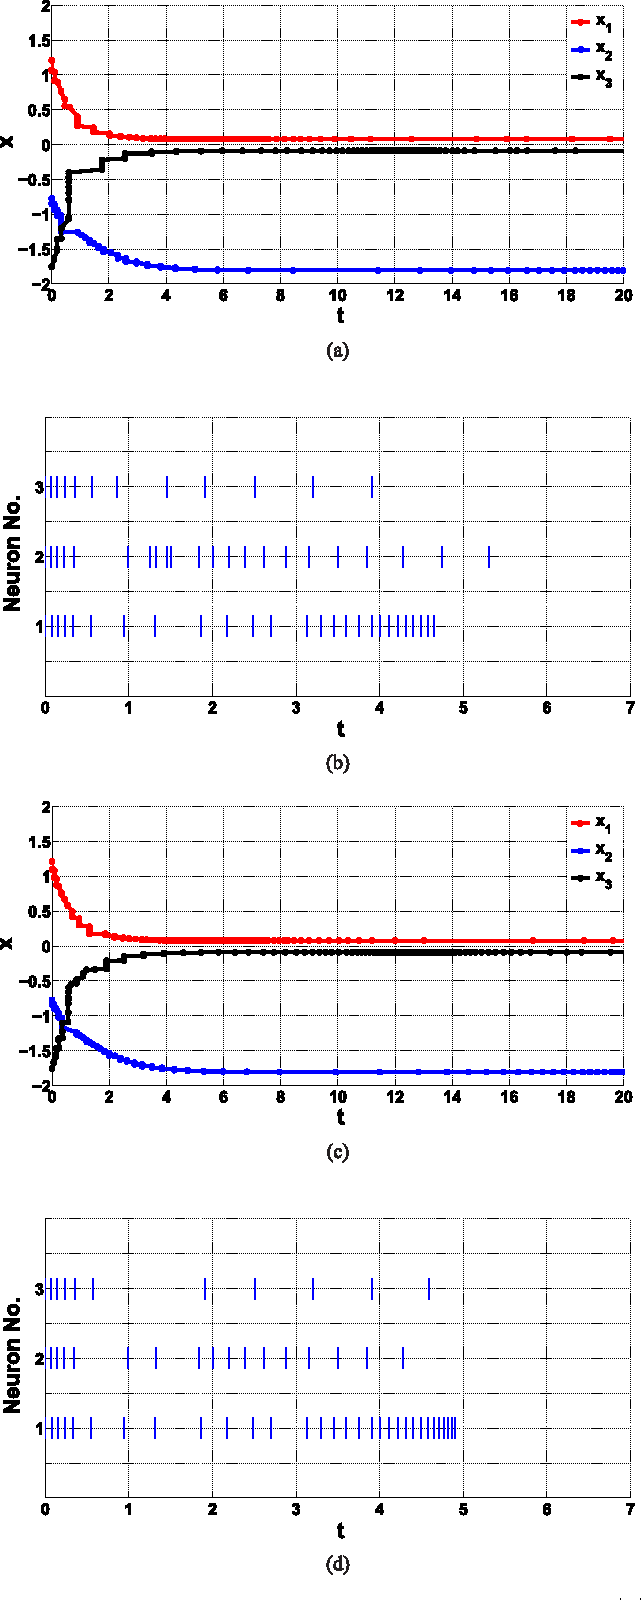 Figure 2 for Stability of Analytic Neural Networks with Event-triggered Synaptic Feedbacks